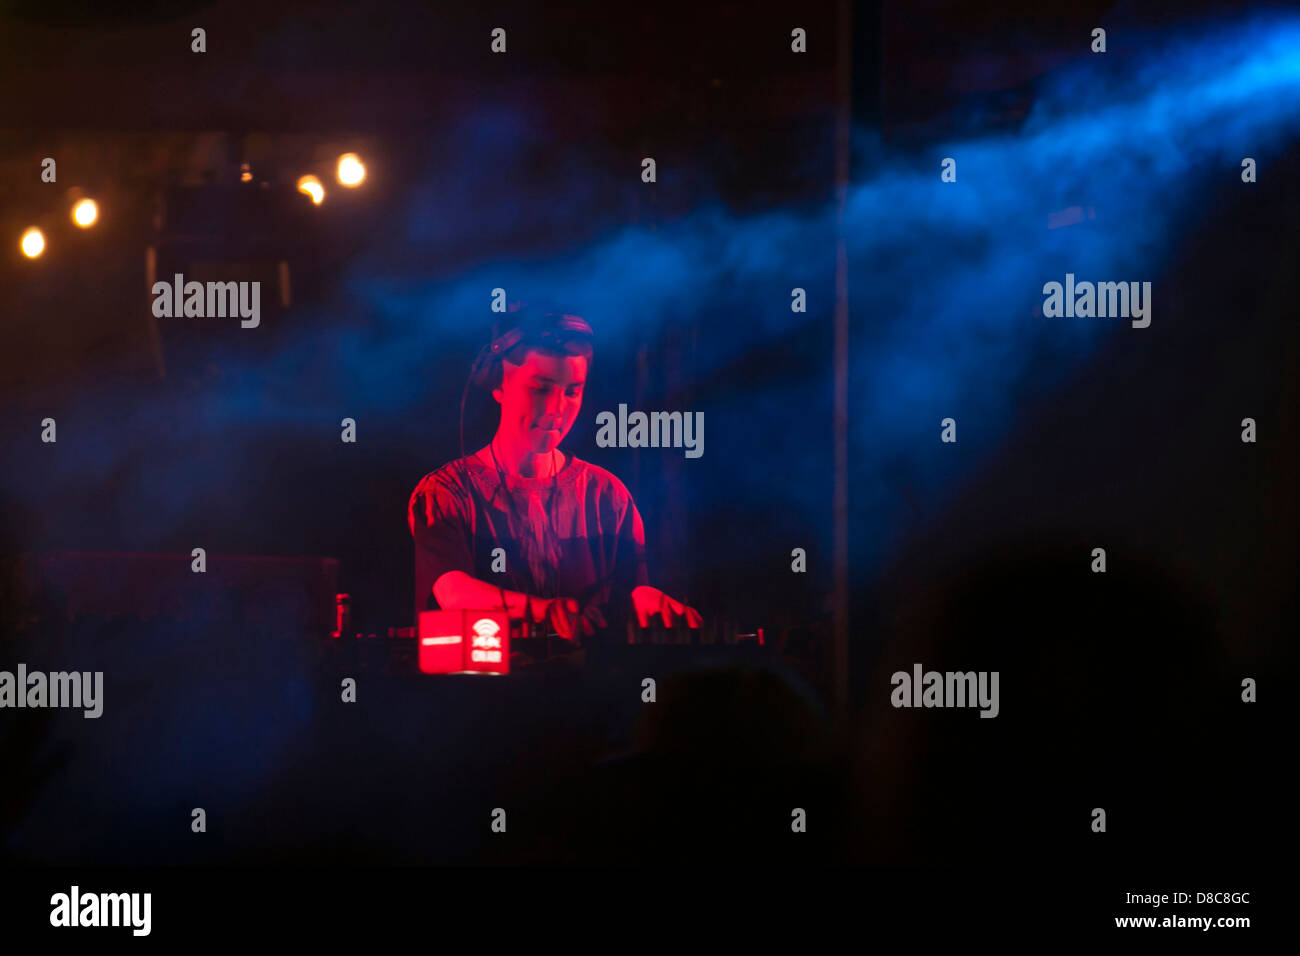 Kim Ann Foxman performing at the Night and Day festival, in Lisbon, Portugal. - Stock Image